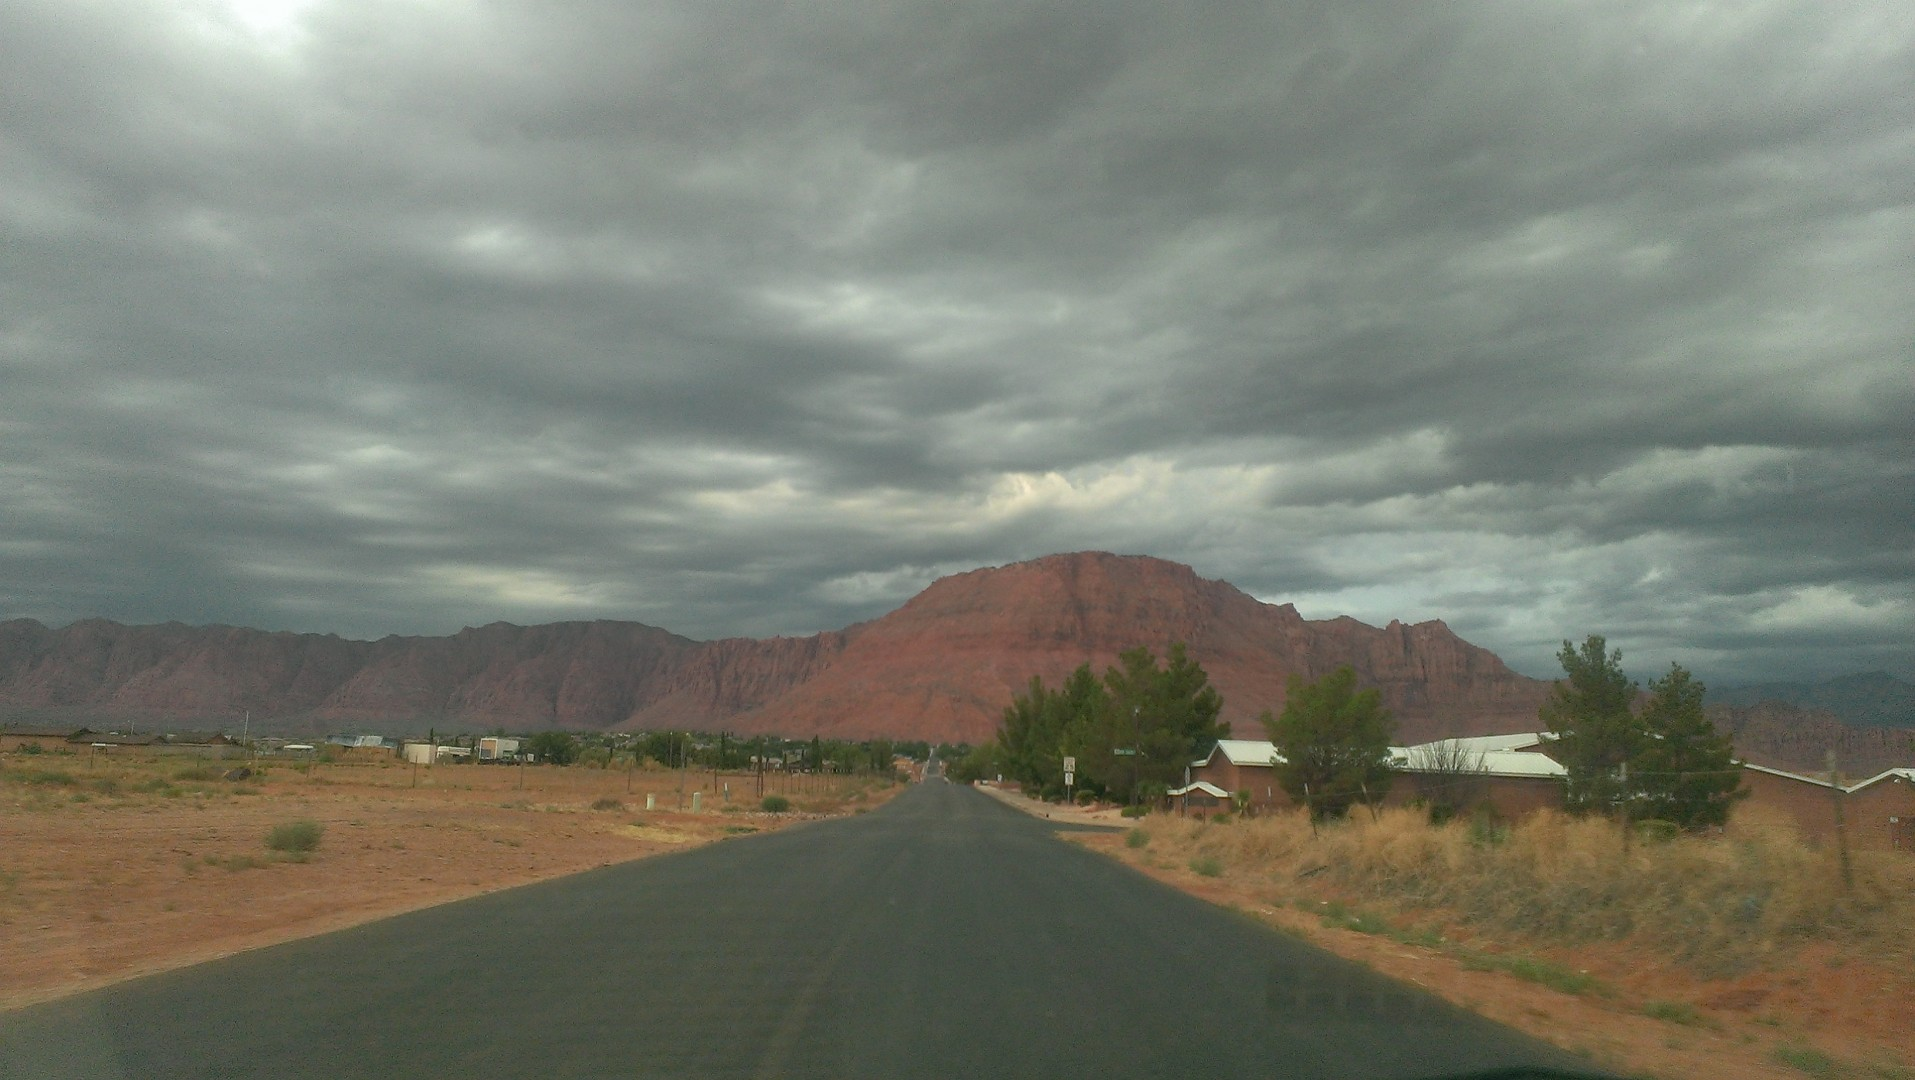 Clouds over Red Mountain, Utah, July 26, 2013 | Photo by Maris McFadden, St. George News